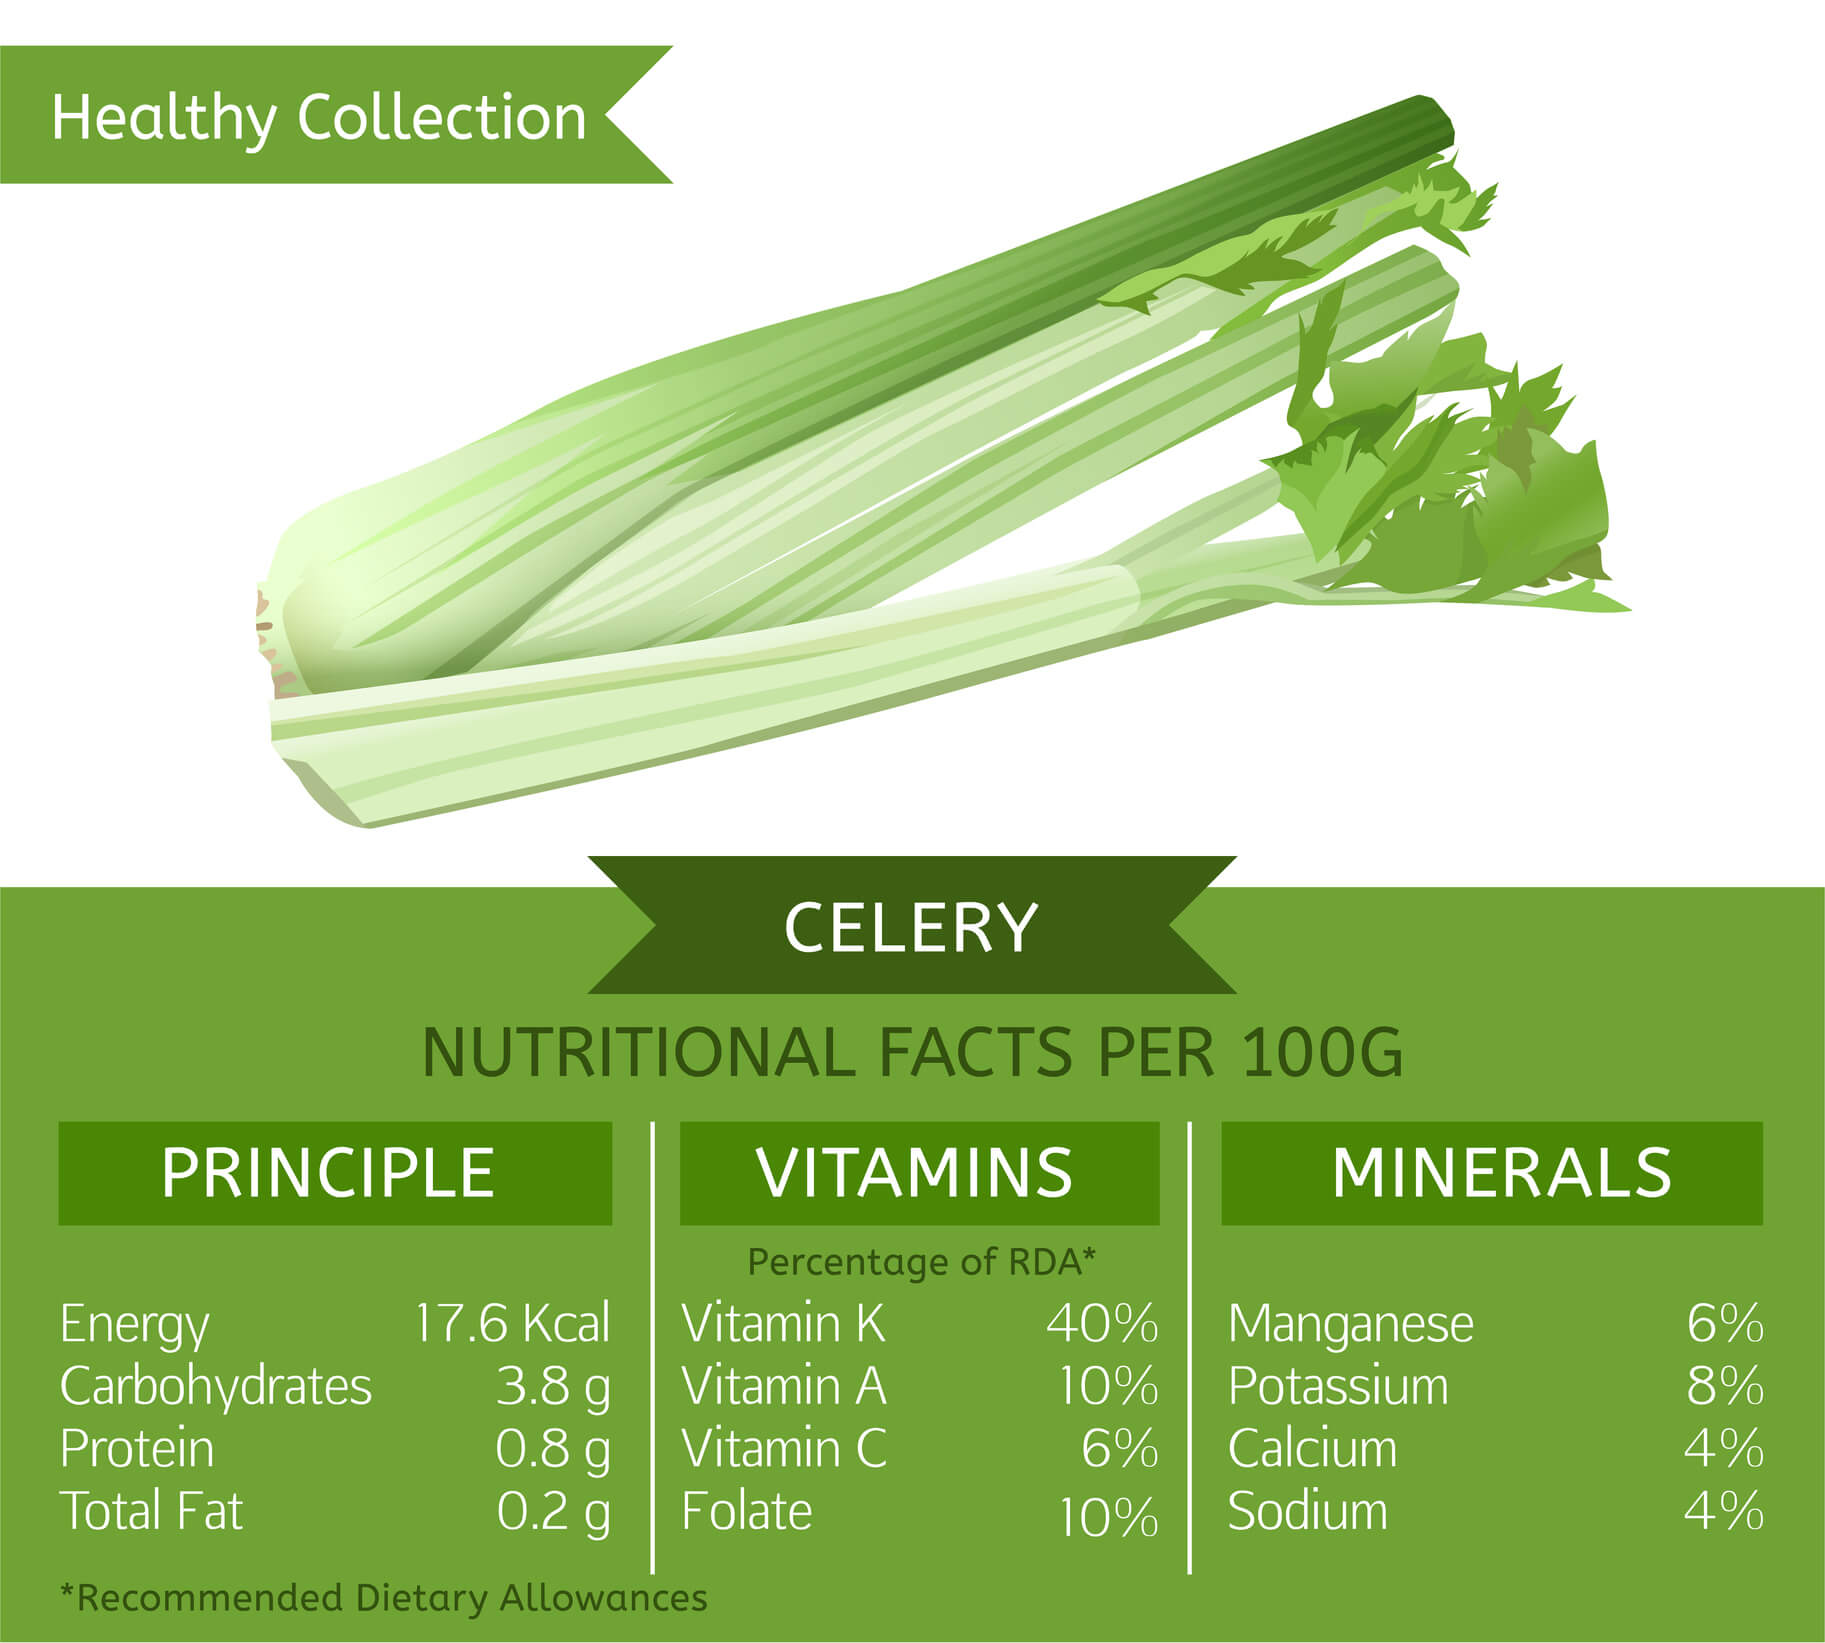 celery health benefits: 5 reasons you should eat this vegetable